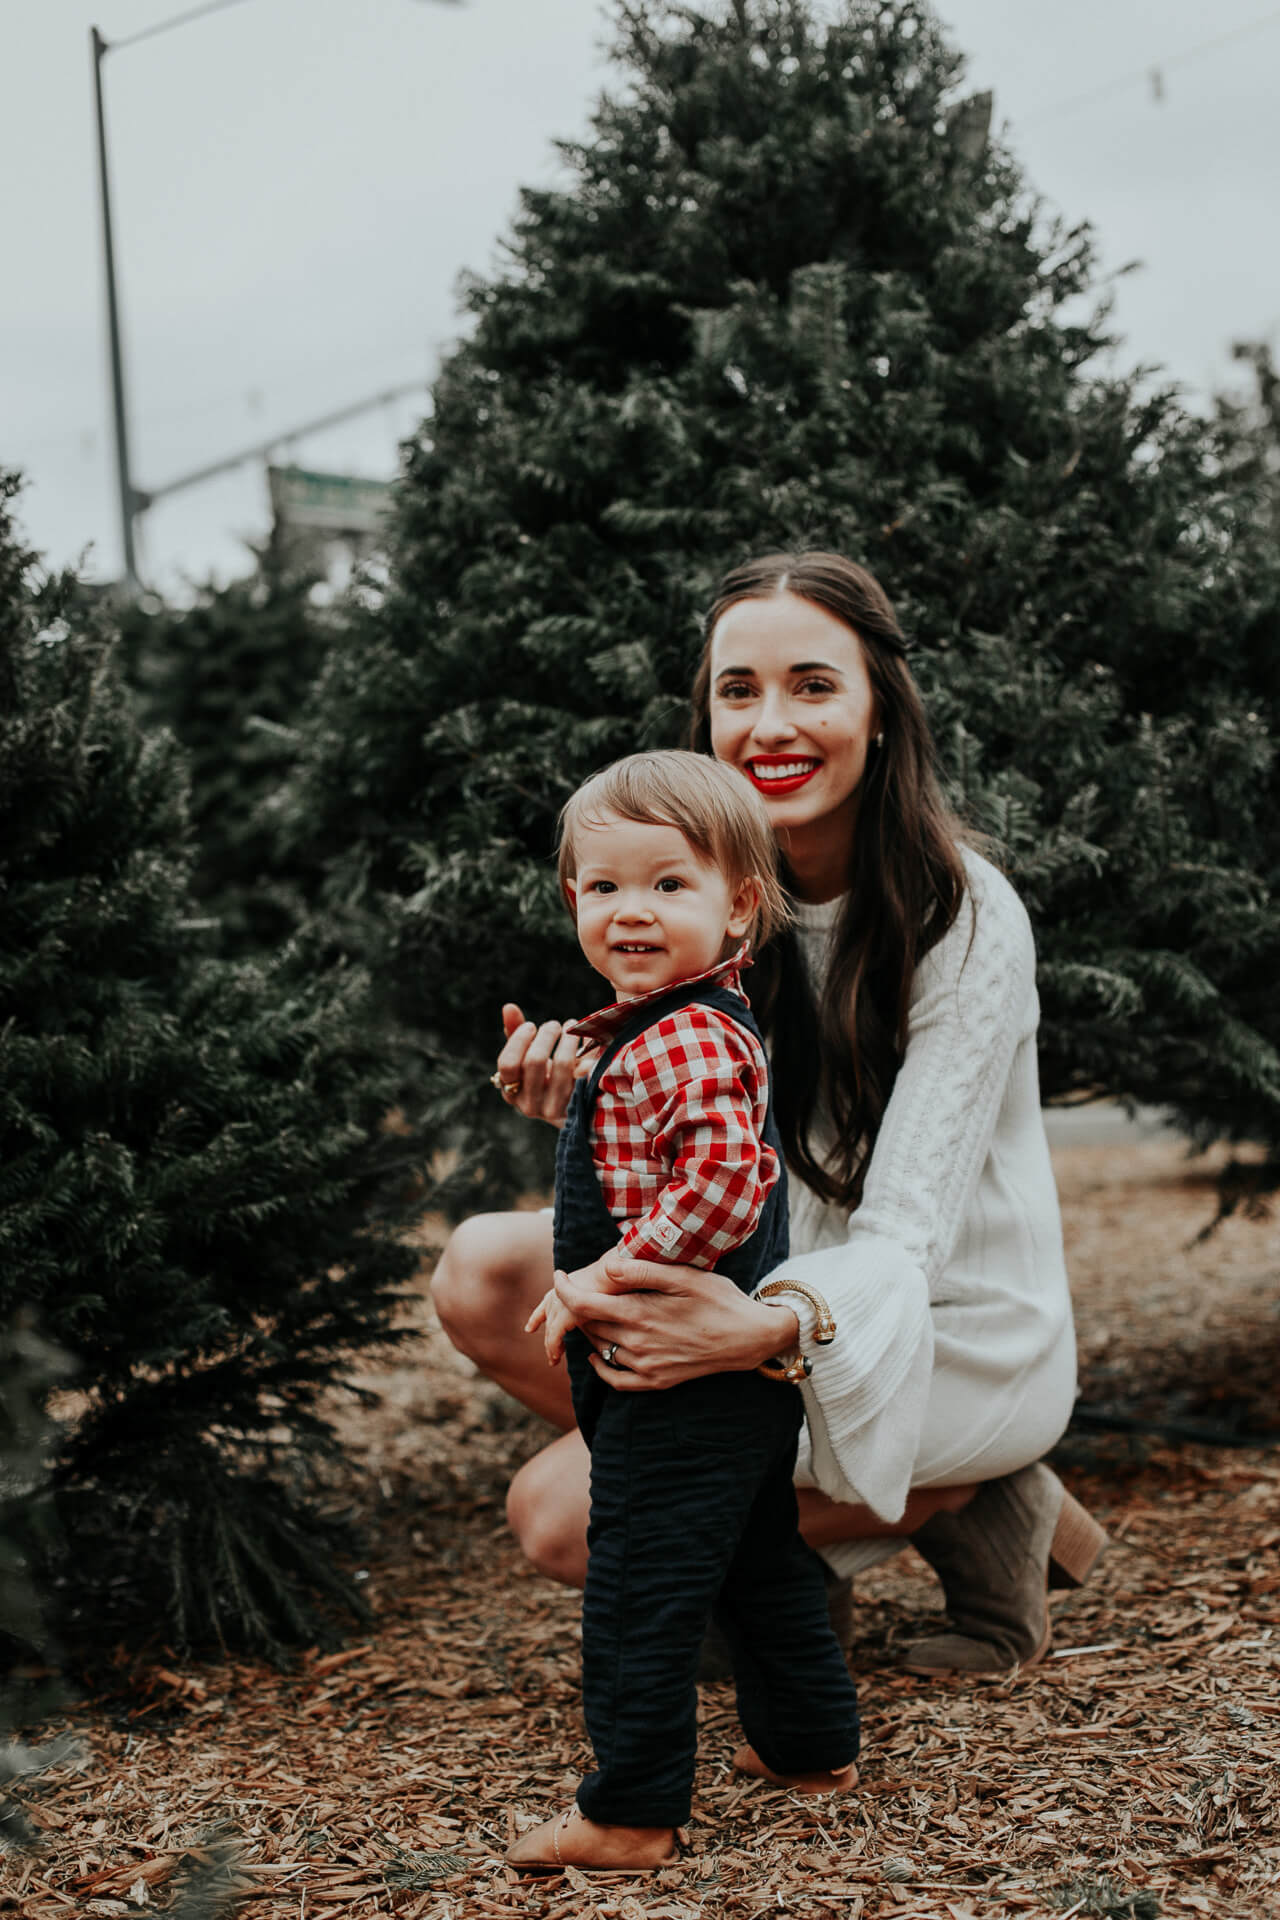 Mommy and Baby at Christmas Tree Farm - M Loves M lifestyle blogger @marmar